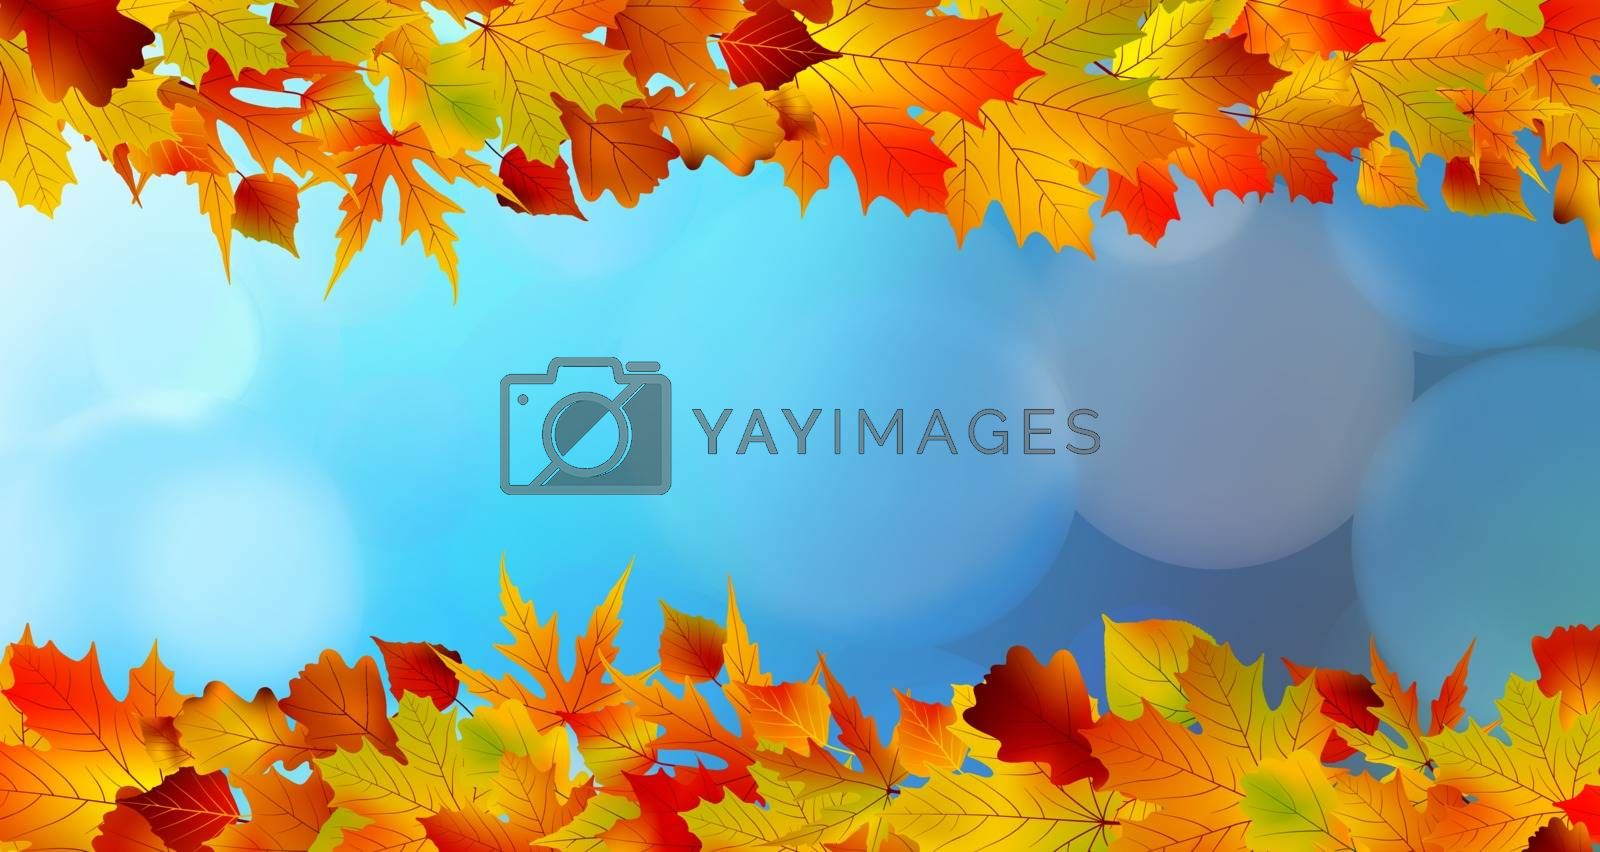 Red and yellow leaves against a bright blue sky by Petrov_Vladimir